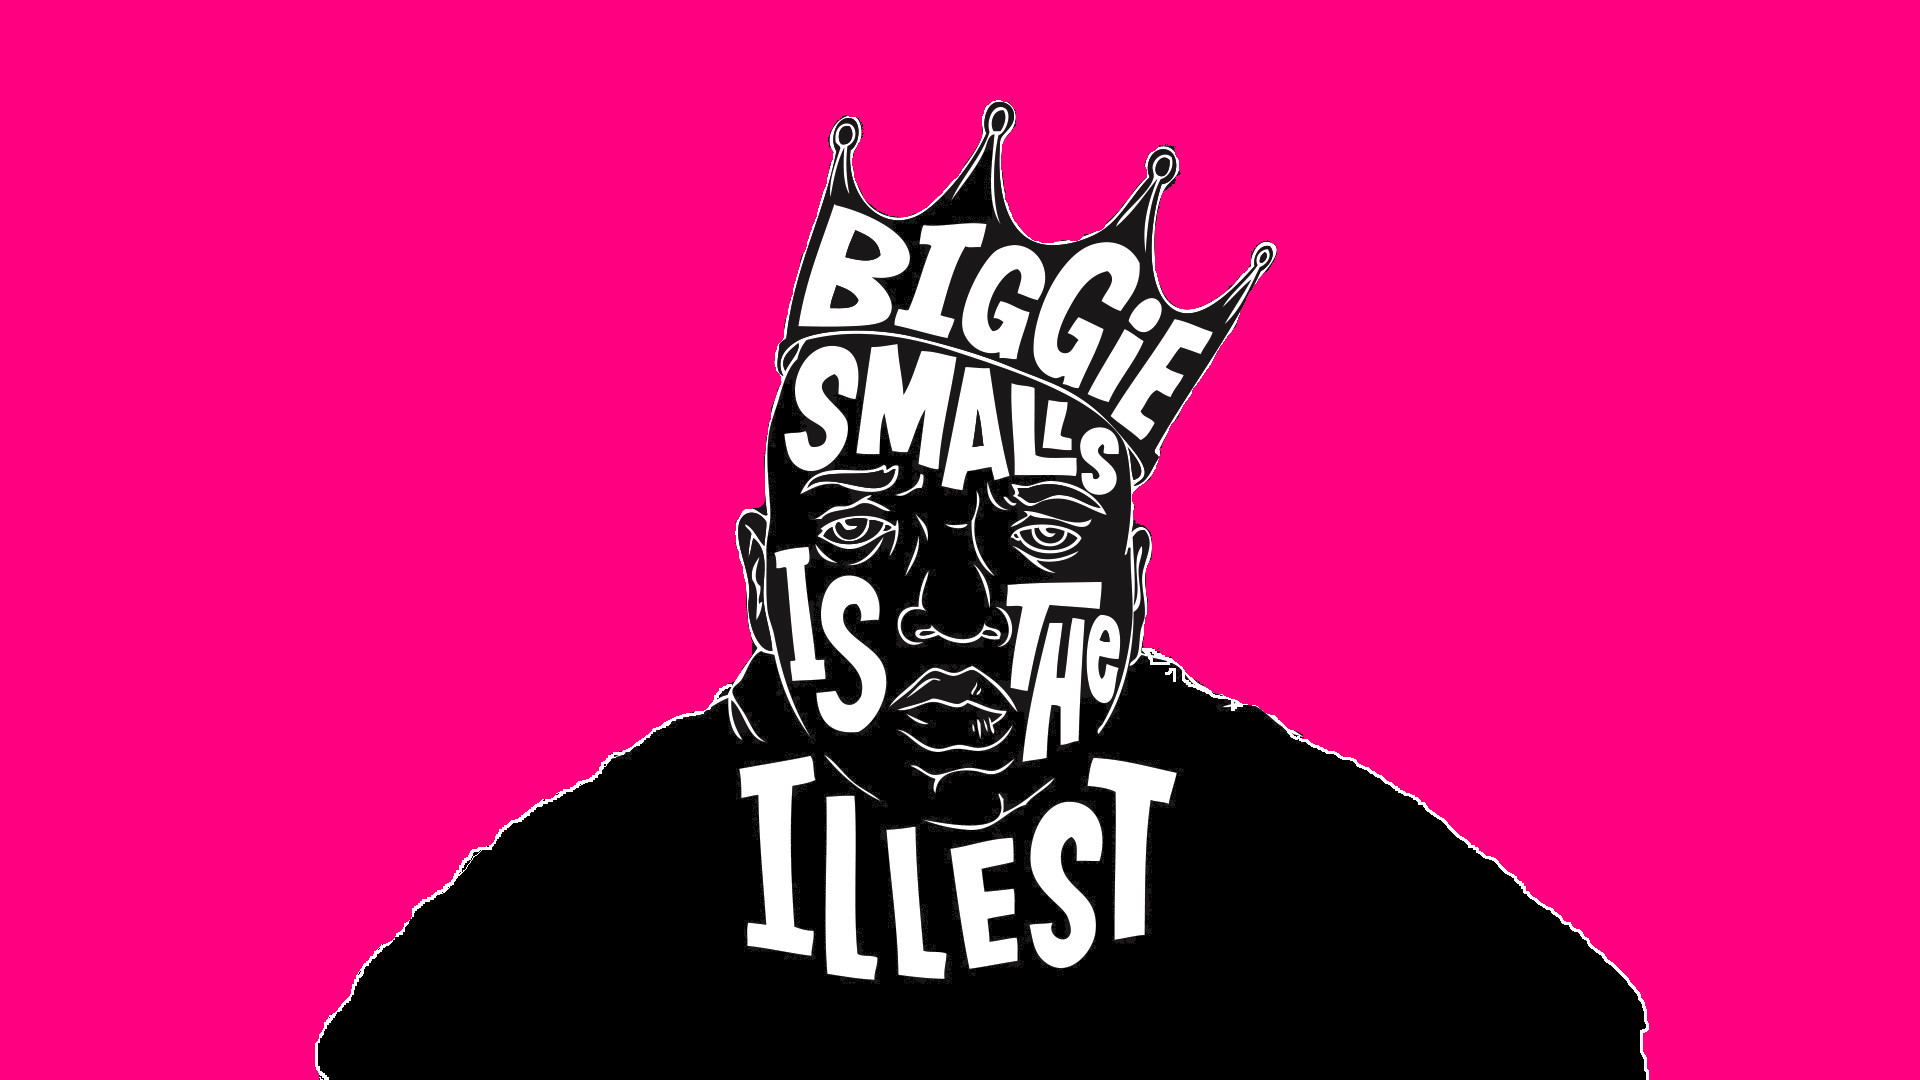 1920x1080 Biggie Smalls is the Illest Wallpaper for Phones and Tablets